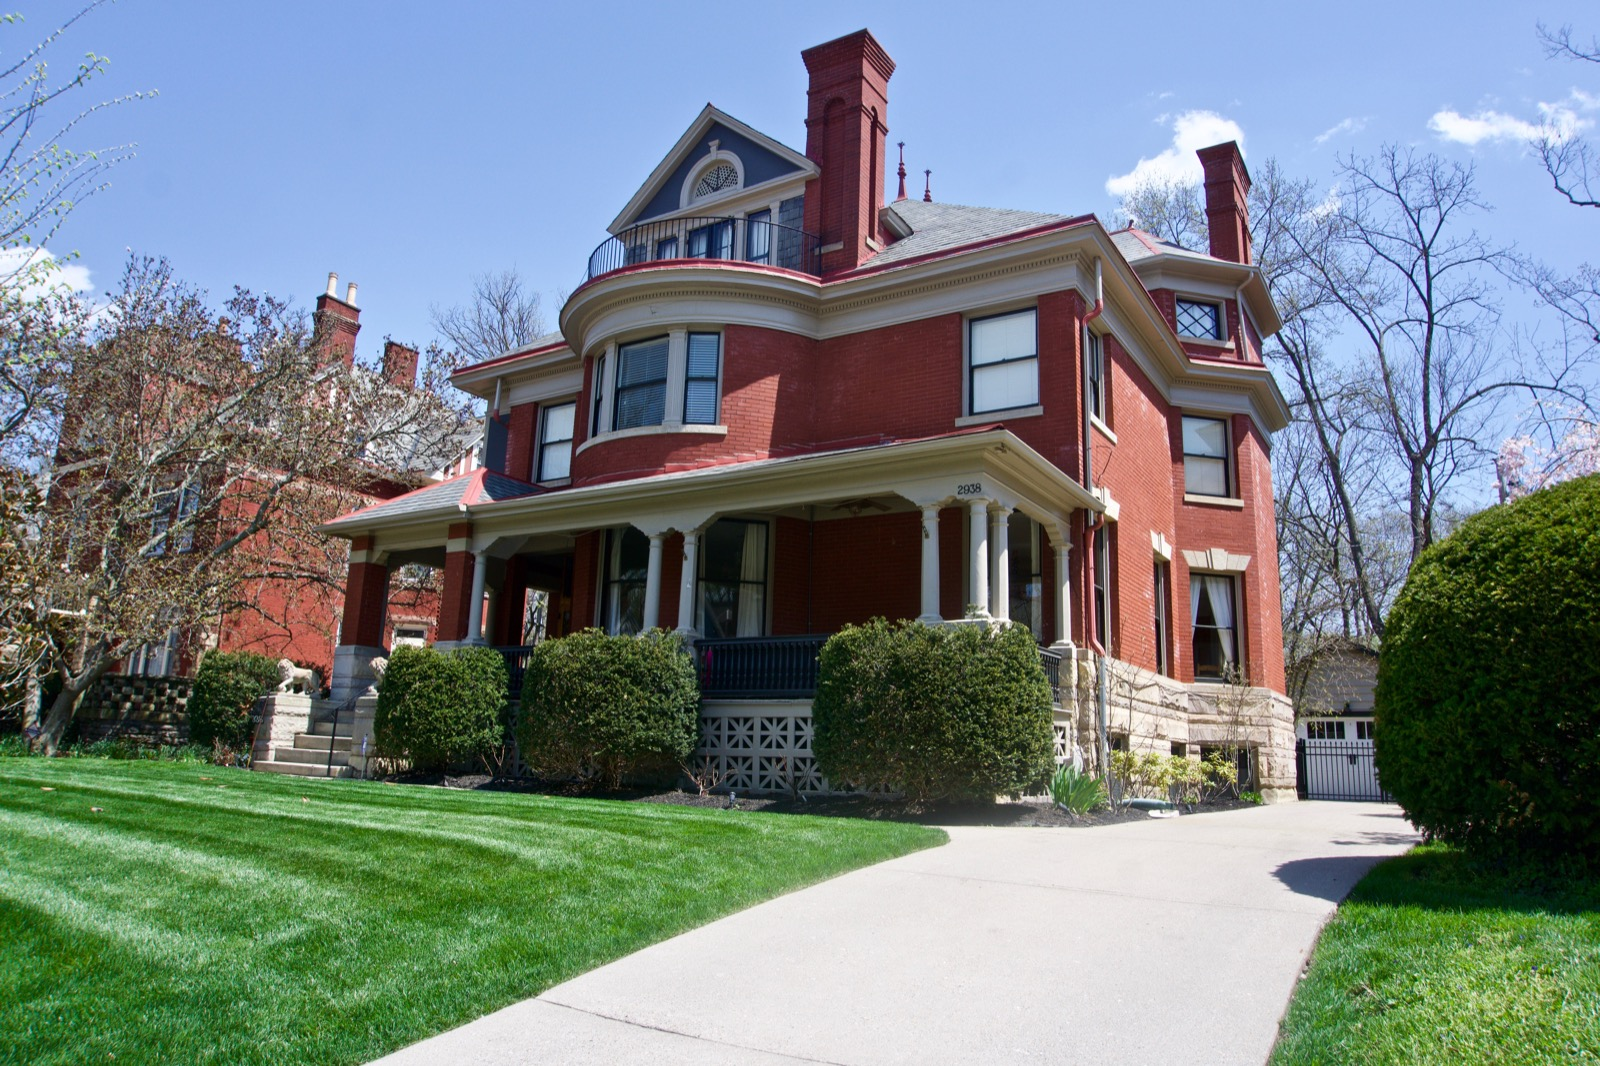 The neighborhood of East Walnut Hills, originally incorporated as the village of Woodburn, is one of Cincinnati's most diverse neighborhoods. Here we turn our attention to its high-end homes, located around the stretch of Madison Road between DeSales corner and O'Bryonville. Many of the larger homes were built in the 19th century by affluent and renowned Cincinnatians such as John Baker, Samuel Keys, W.W. Scarborough, and Joshua Bates. They're predominantly of the Richardson Romanesque style, and the later-built (and smaller) homes follow suit. Yet other styles were added as well, including Tudor Revival and Queen Anne. / Image: Brian Planalp // Published: 5.4.18